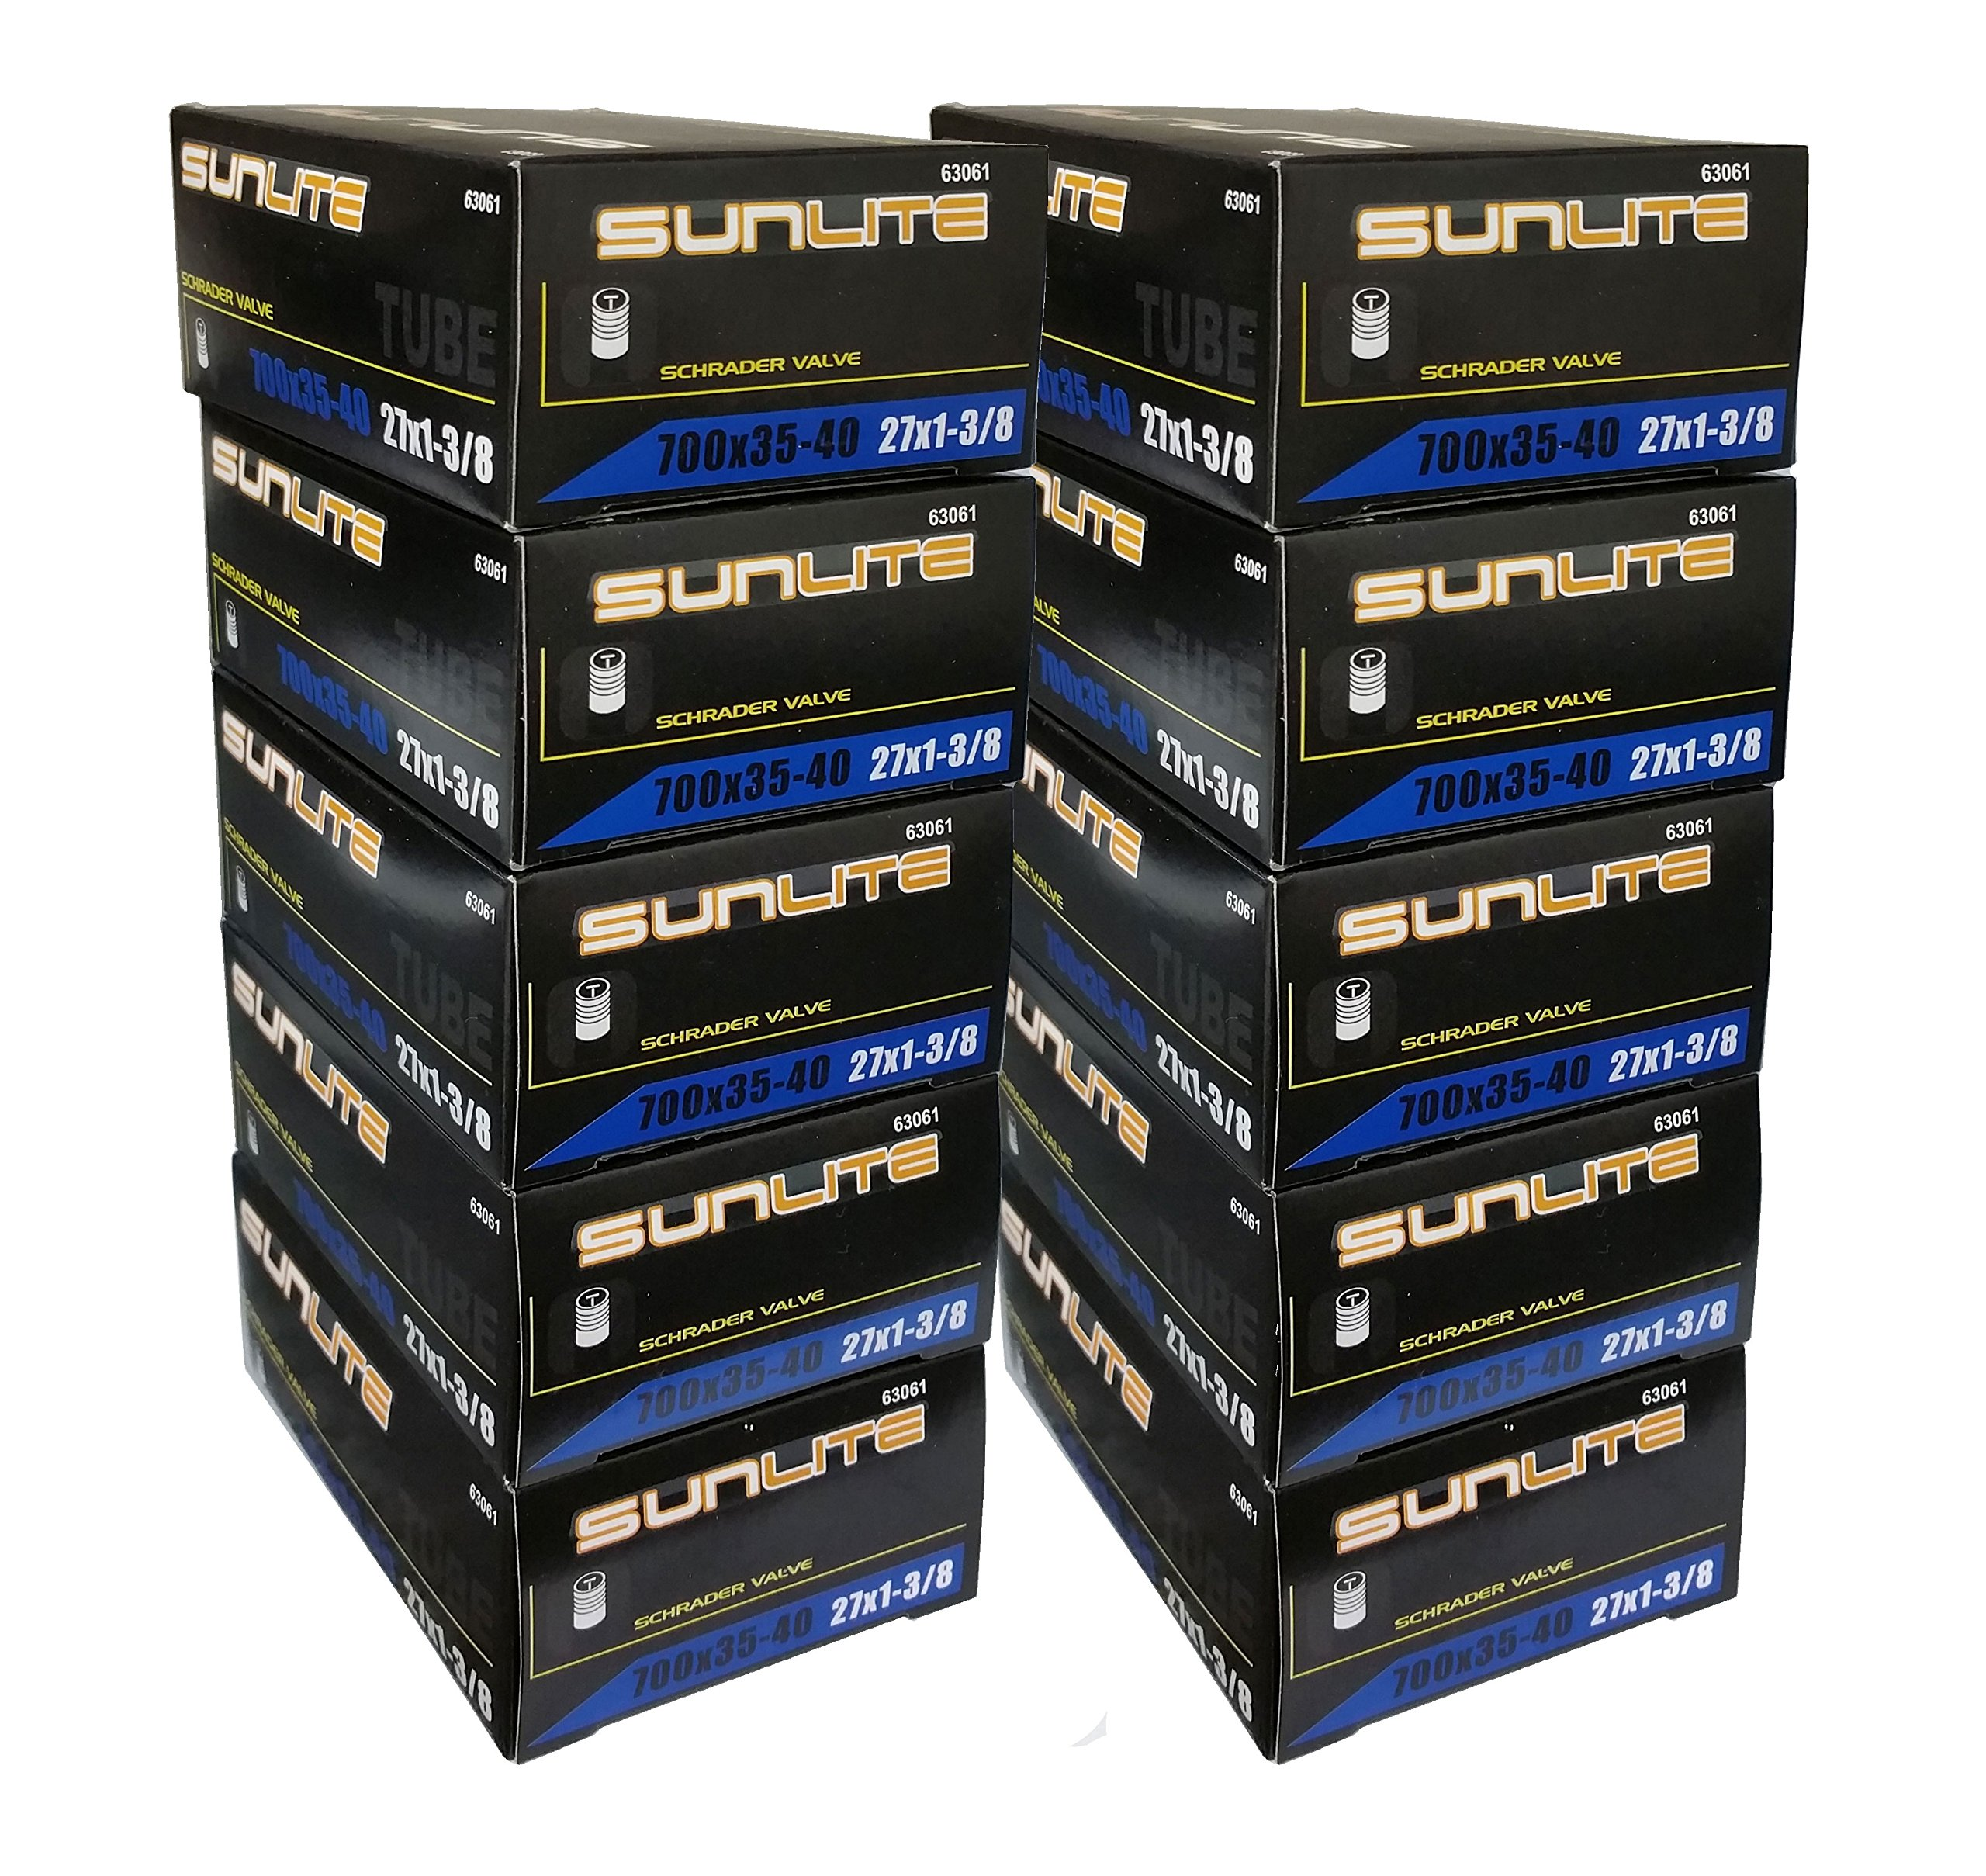 10 PACK SPECIAL - Tube, 700 x 35-40 (27 x 1-3/8) SCHRADER Valve 32mm, Sunlite (10 PACK SPECIAL) by Street Fit 360